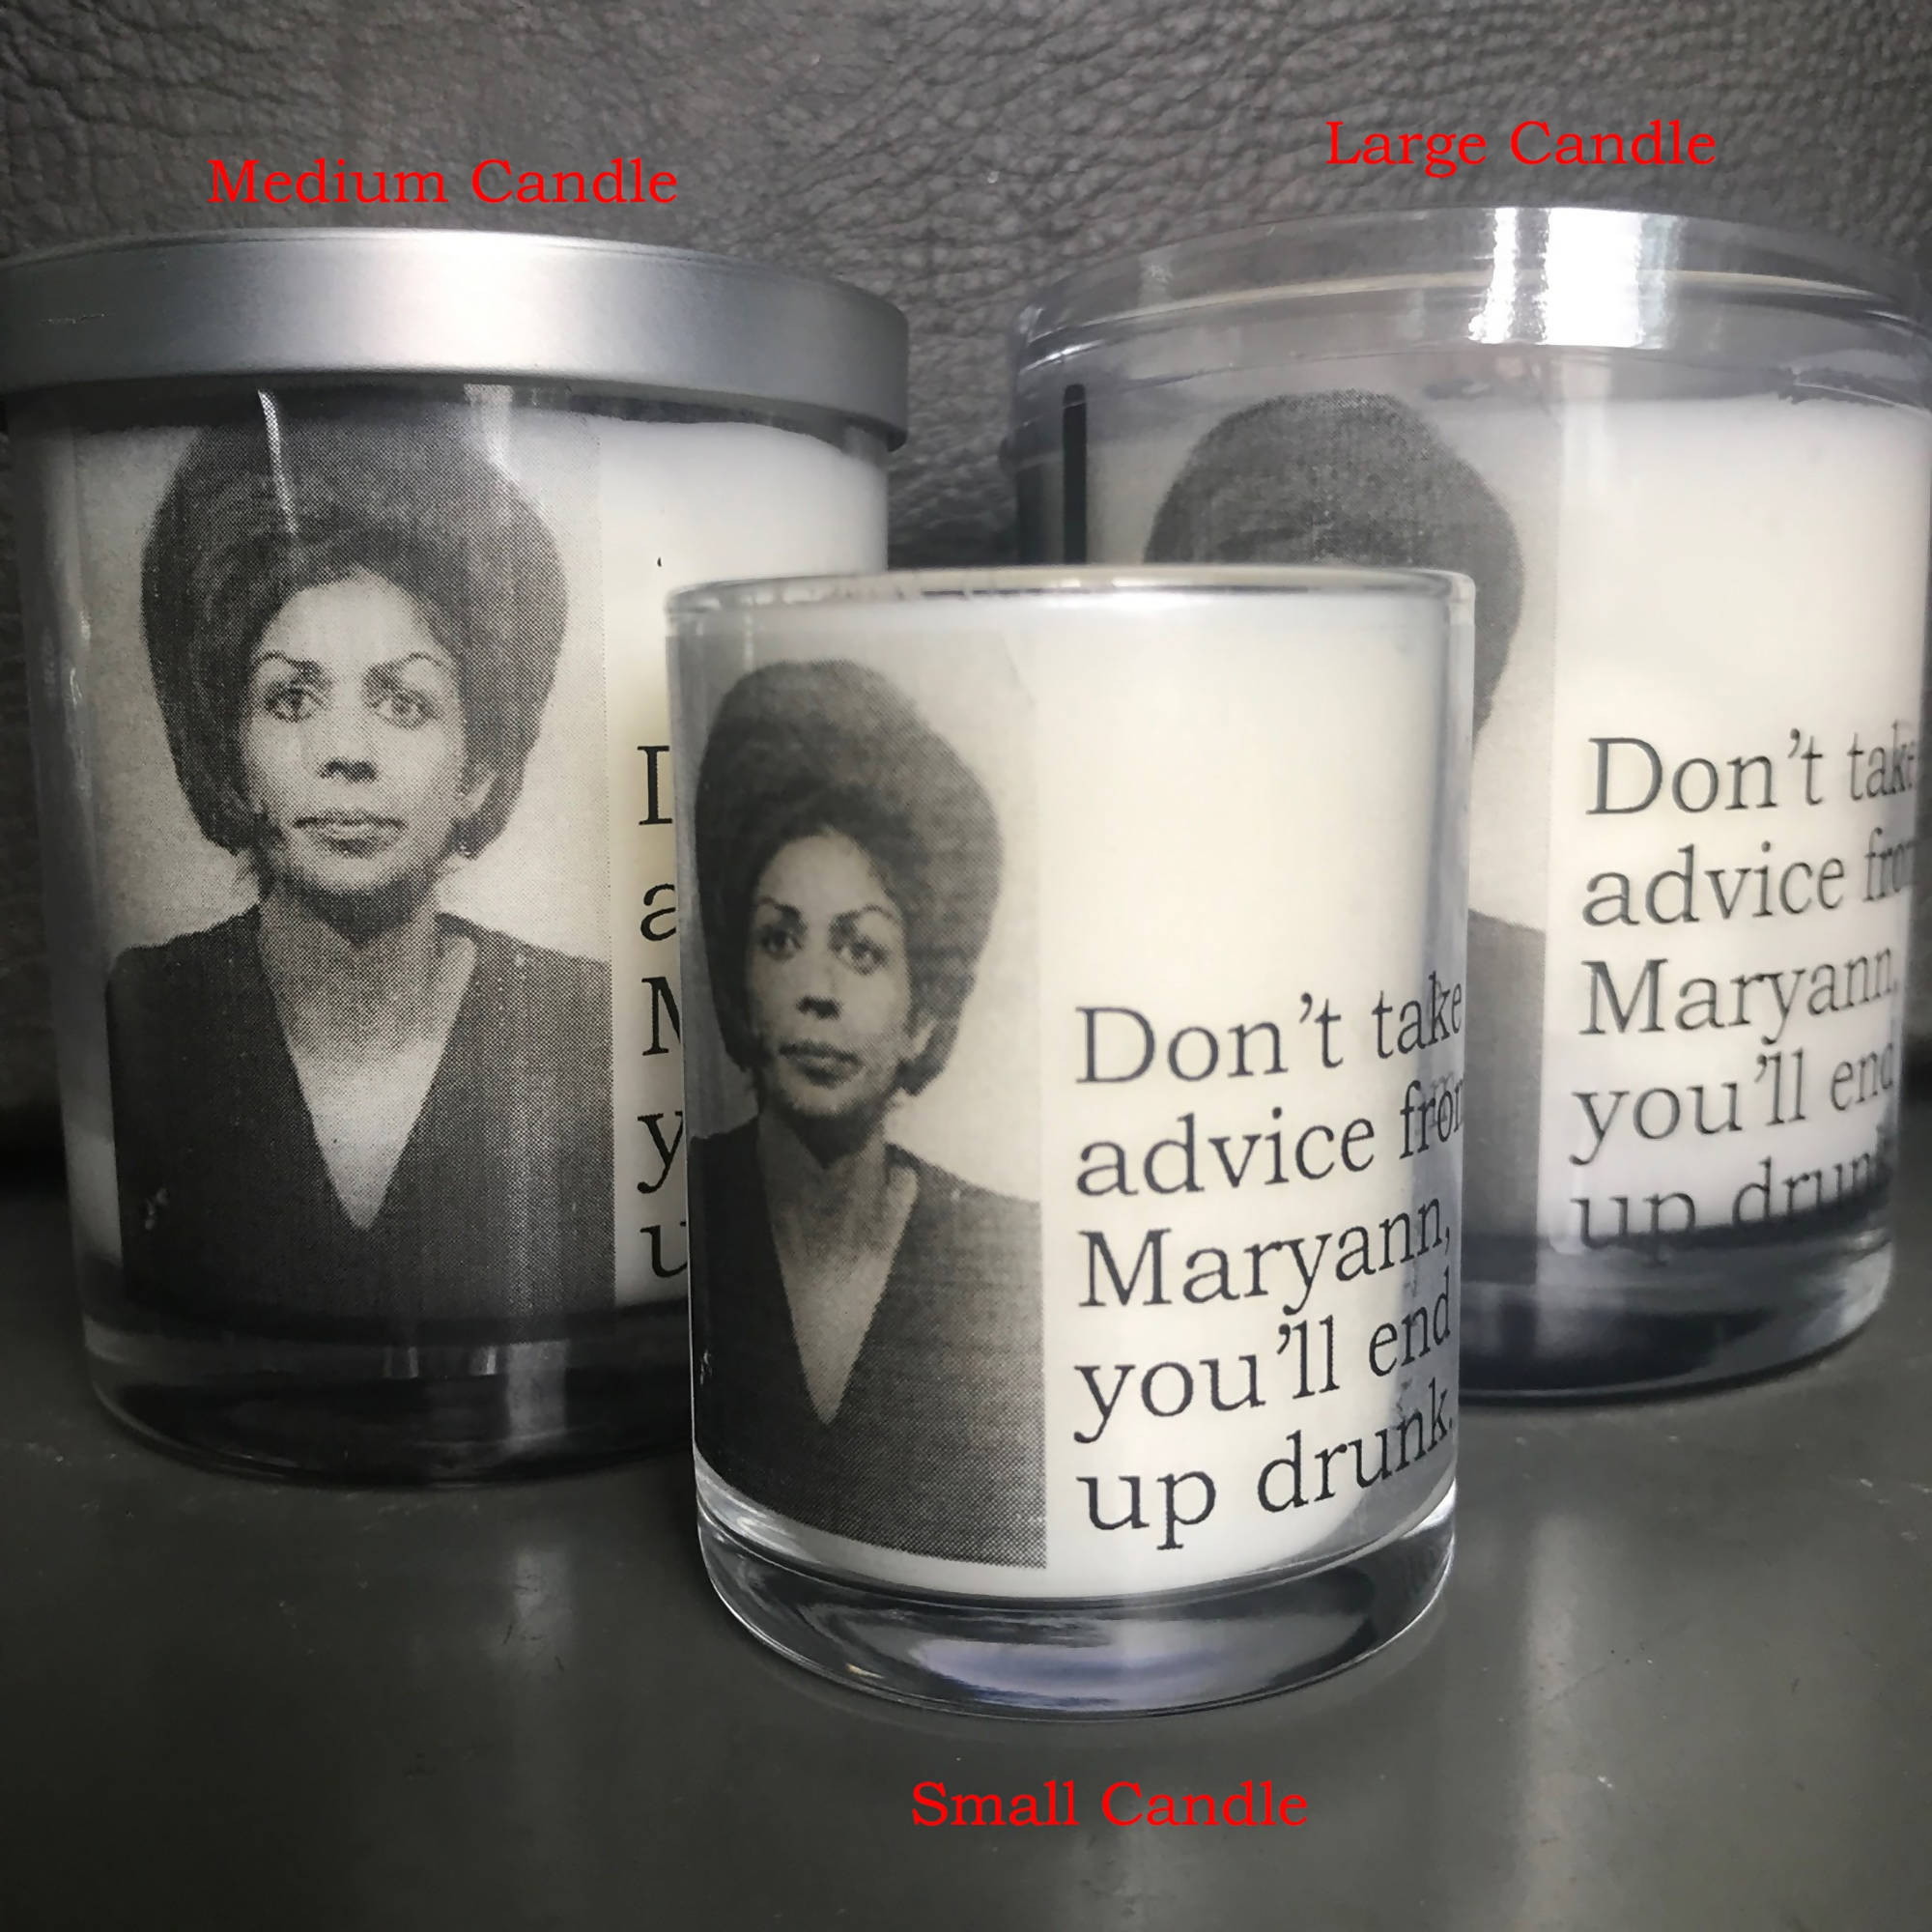 Big House Candles, Don't take advice from Maryann…